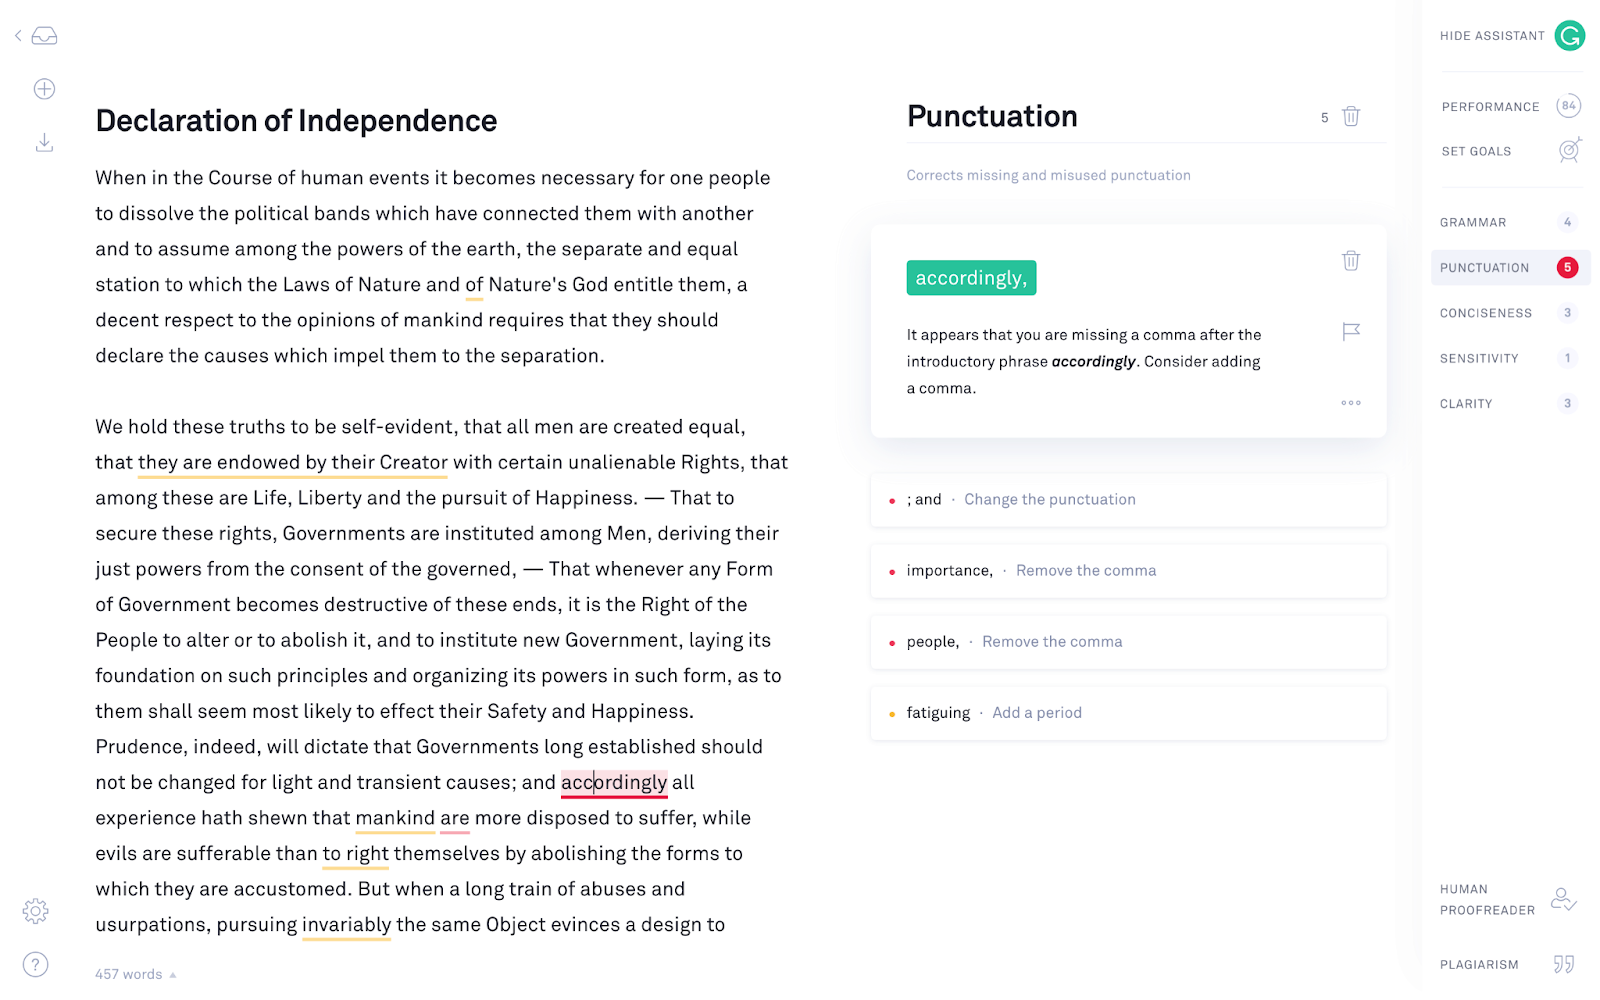 Grammarly app interface for spelling and grammar